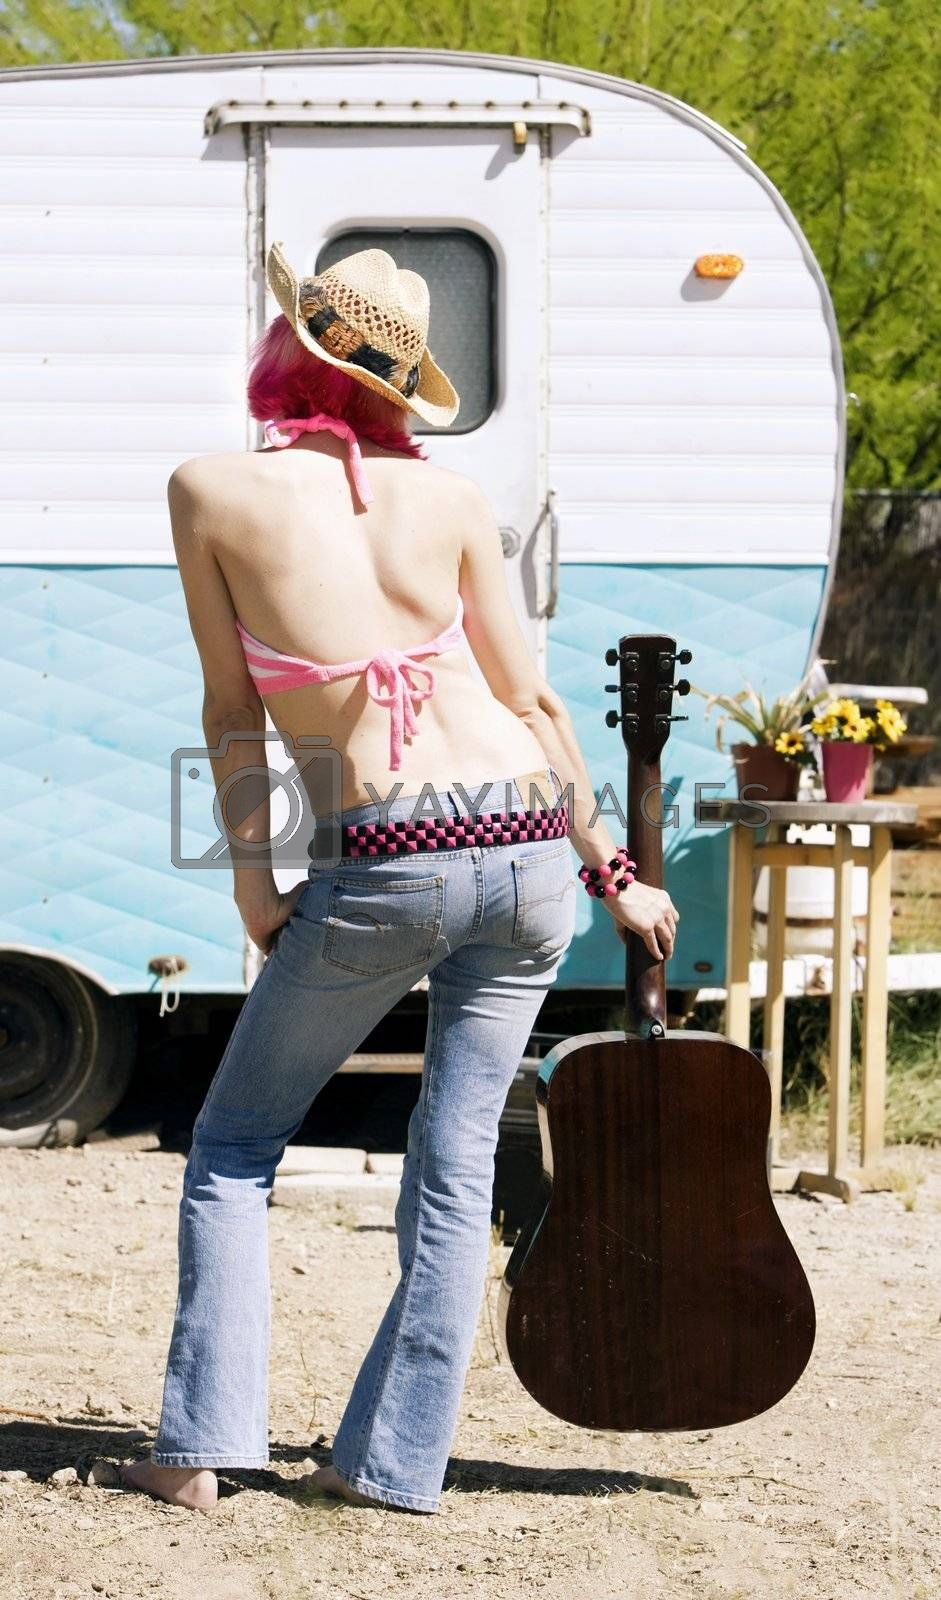 Pretty Woman Front of Vintage Travel Trailer with a Guitar